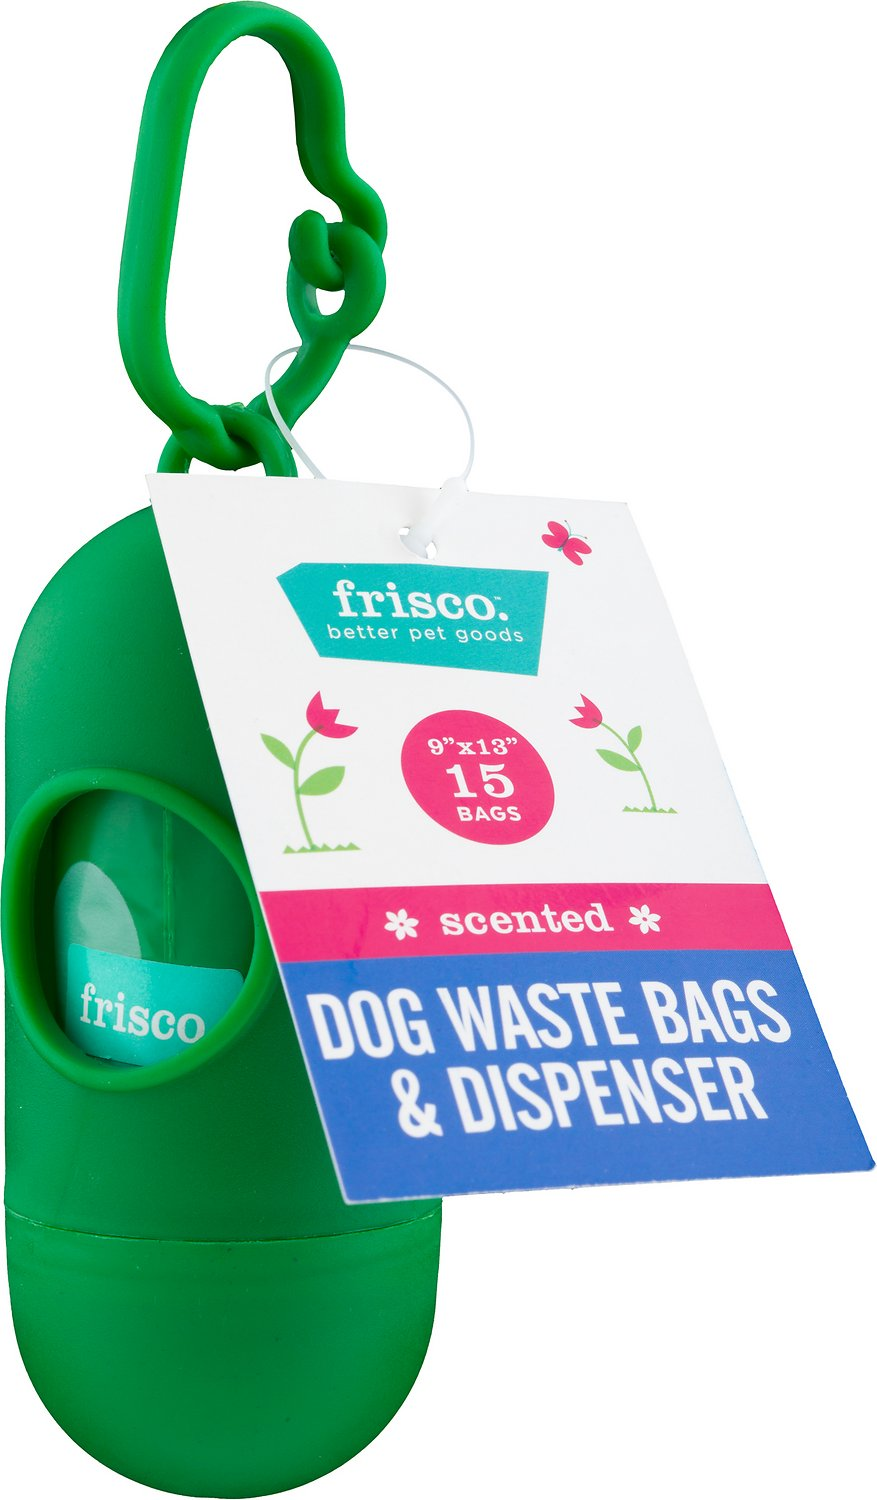 Discussion on this topic: Frisco Refill Planet Friendly Dog Poop Bag, , frisco-refill-planet-friendly-dog-poop-bag/